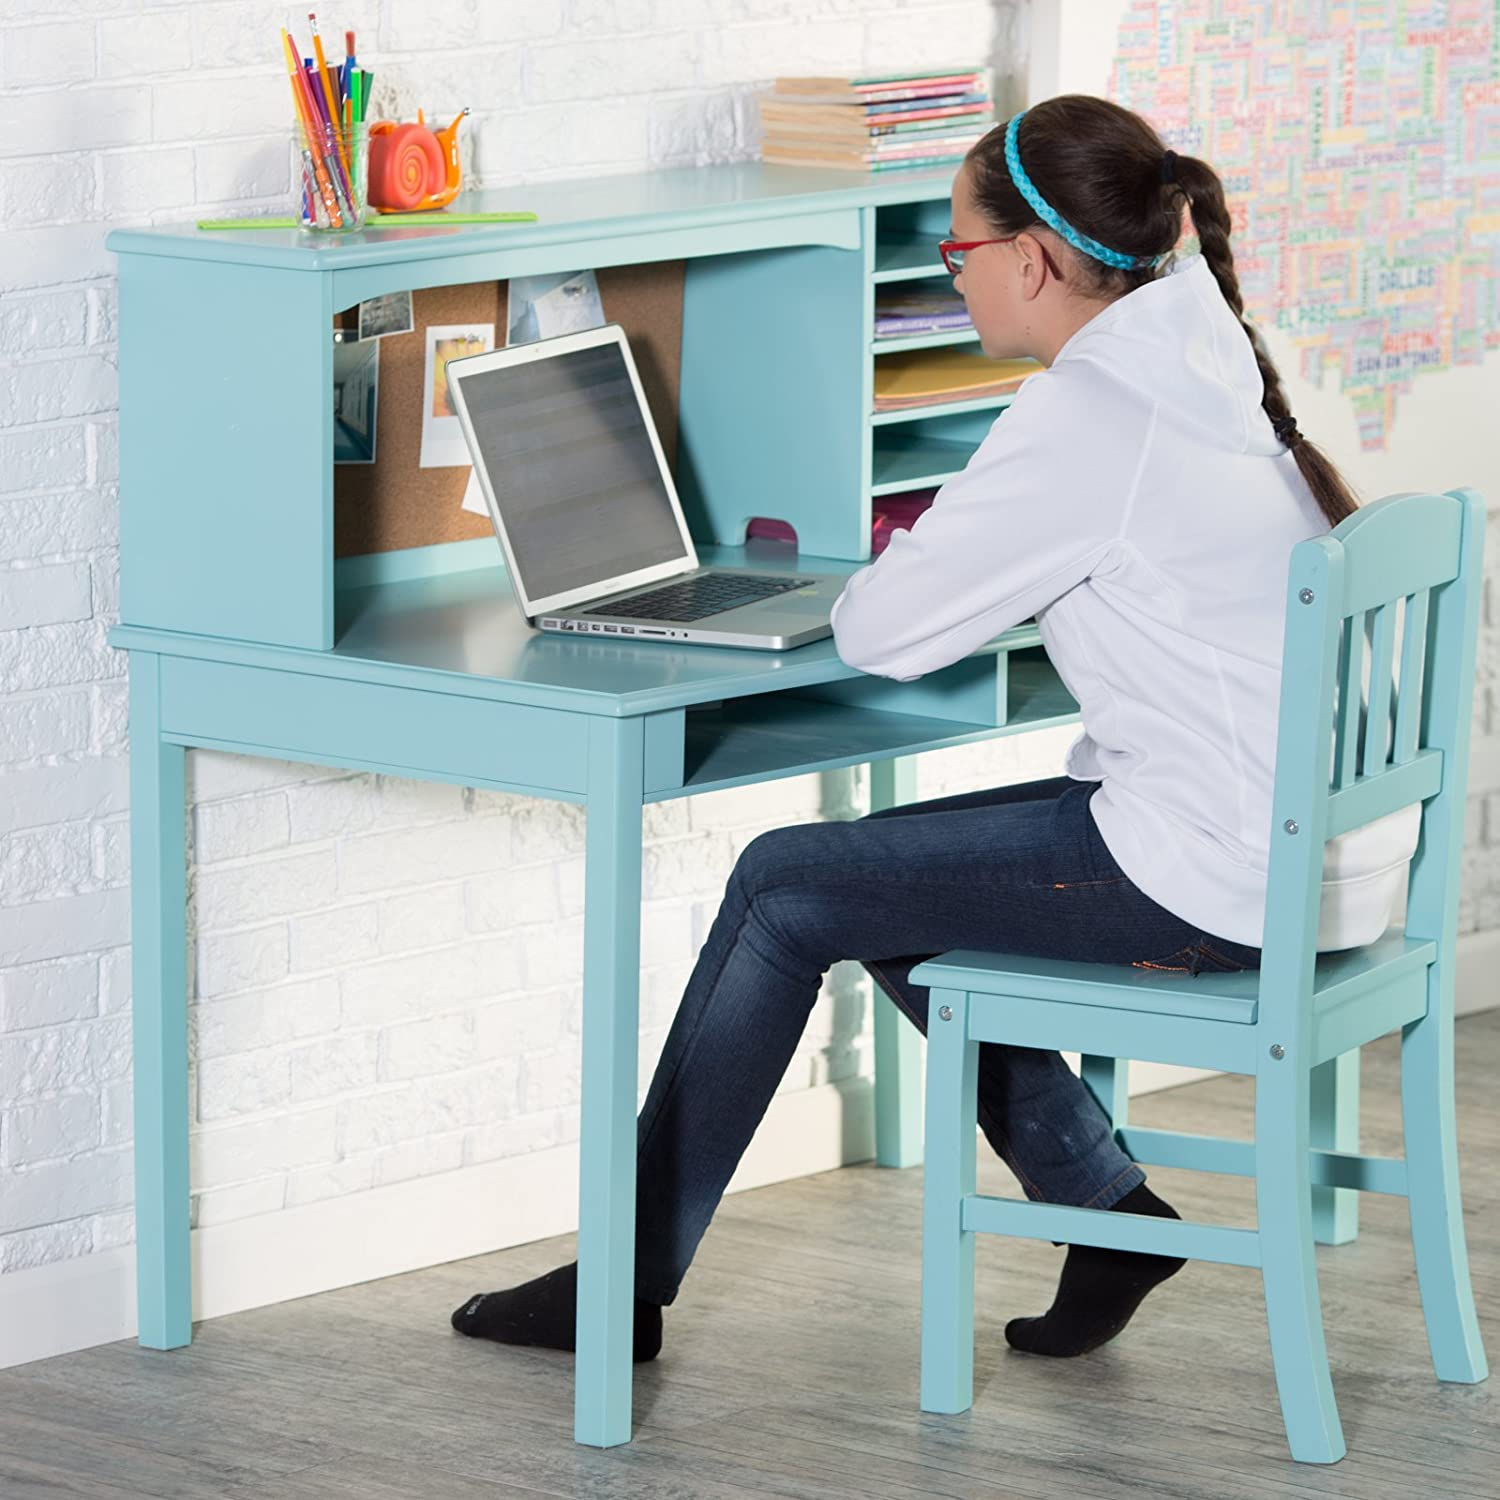 minimalist the kids desk decoration nuance design can inside be furniture of blue with natural cute and house ideas chair that nice modern simple